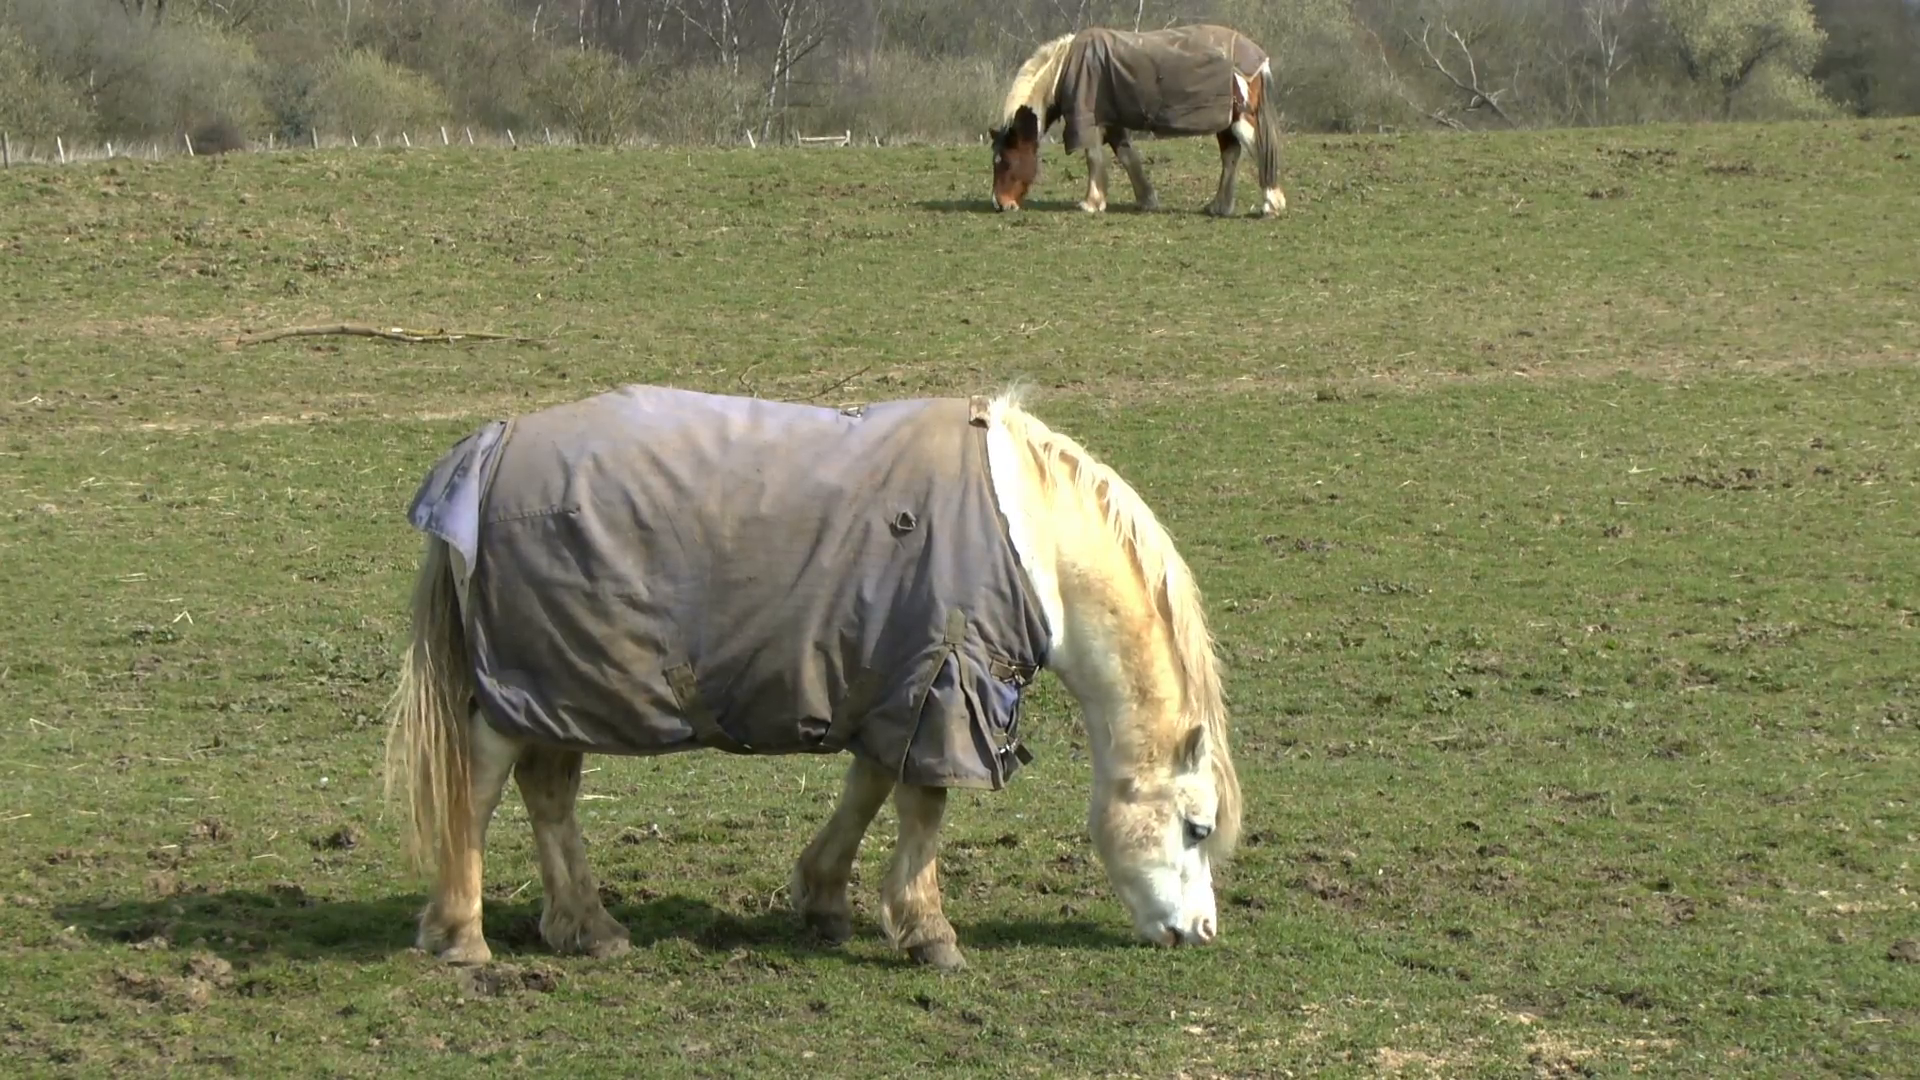 Footage of two horses grazing in a field wearing a Horse blanket ...